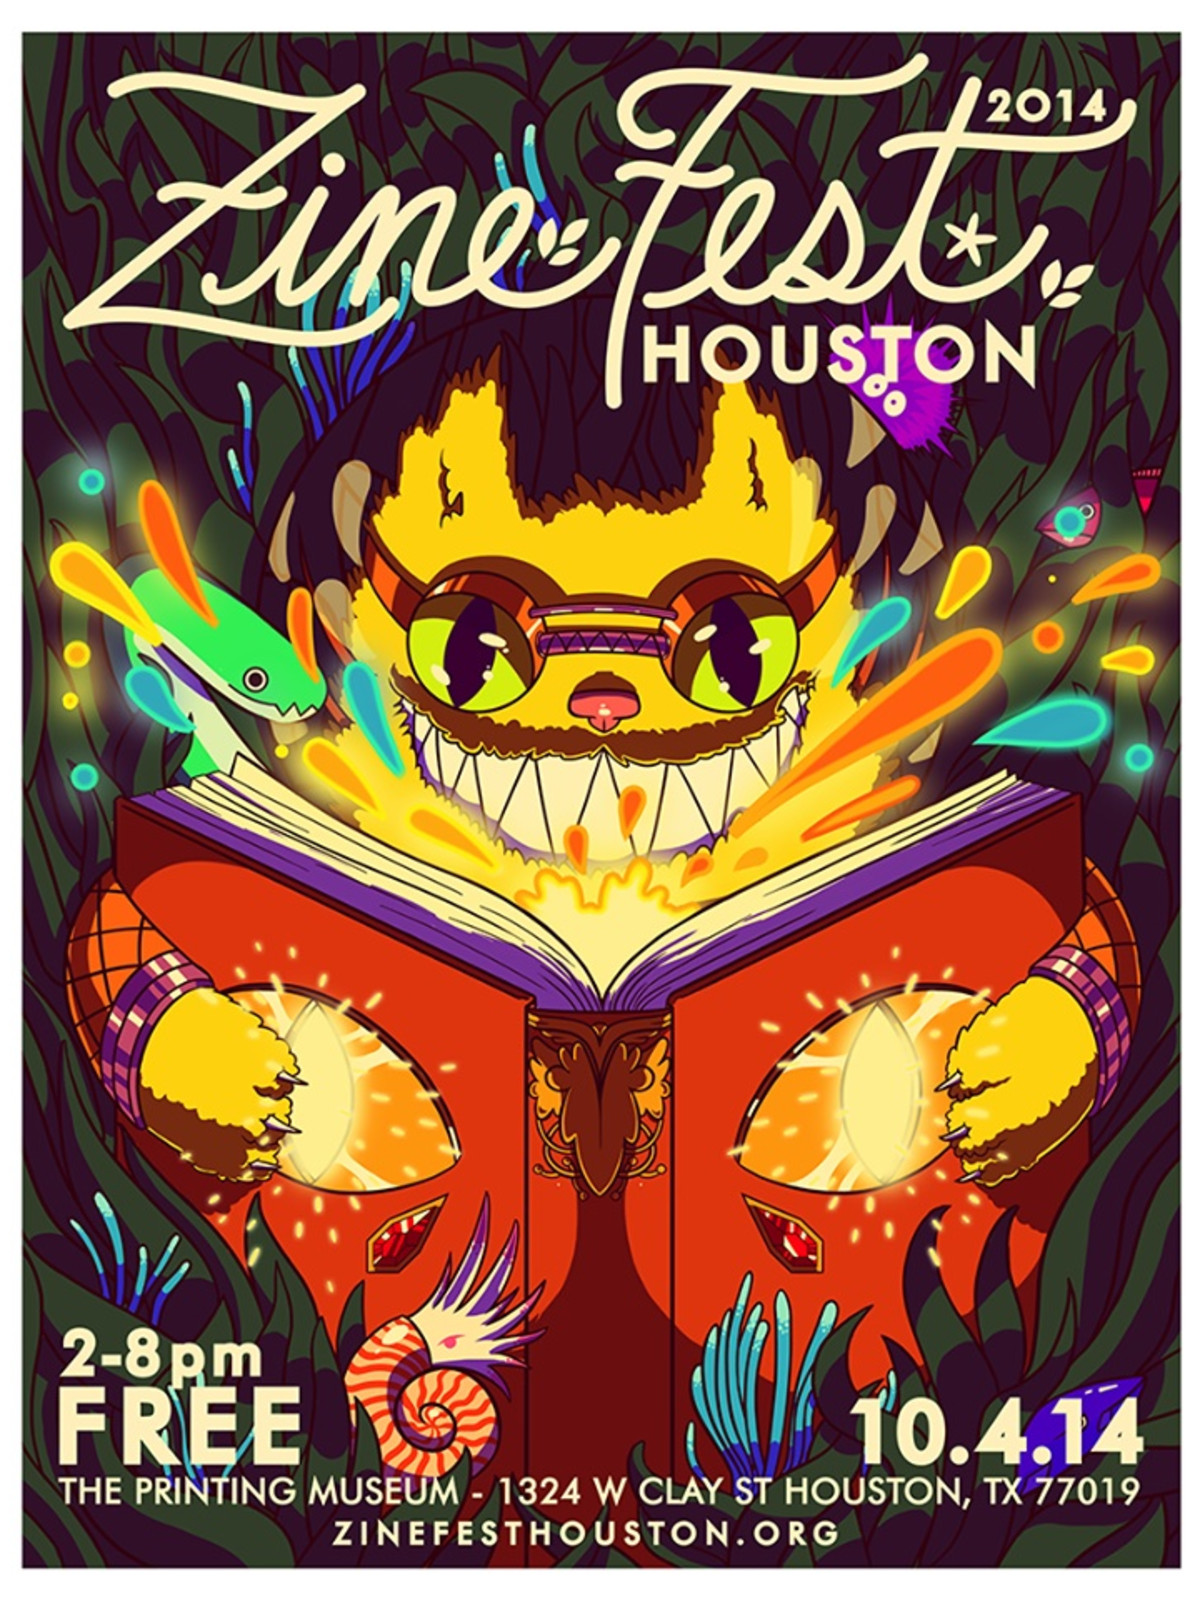 Zine Fest Houston 2014